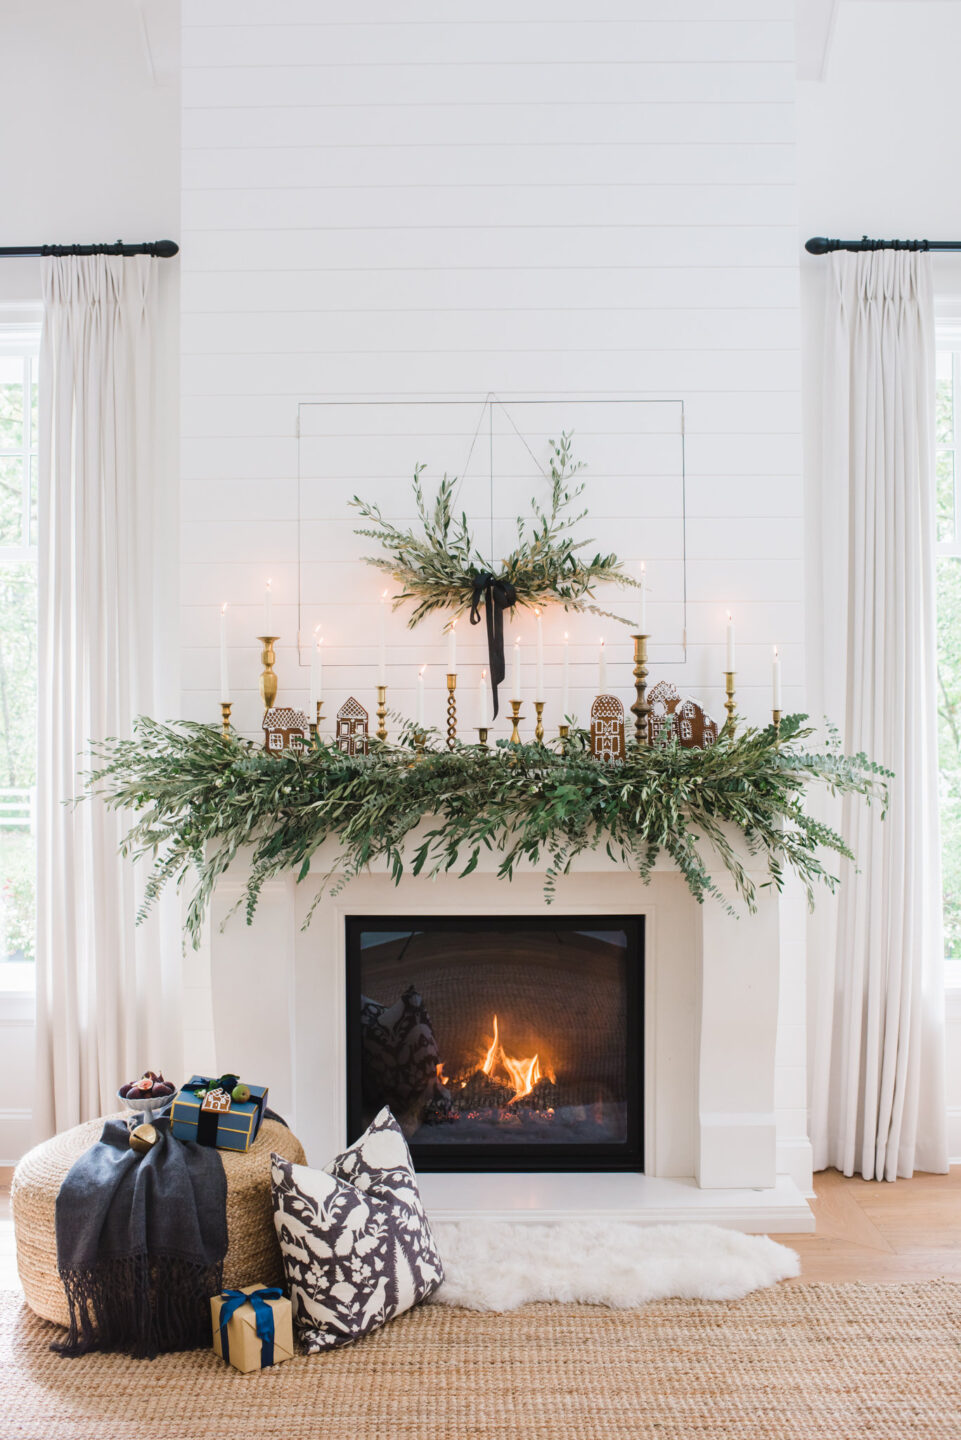 Beautiful holiday greenery on a white fireplace - Monika Hibbs. #holidaydecor #fireplace #garland